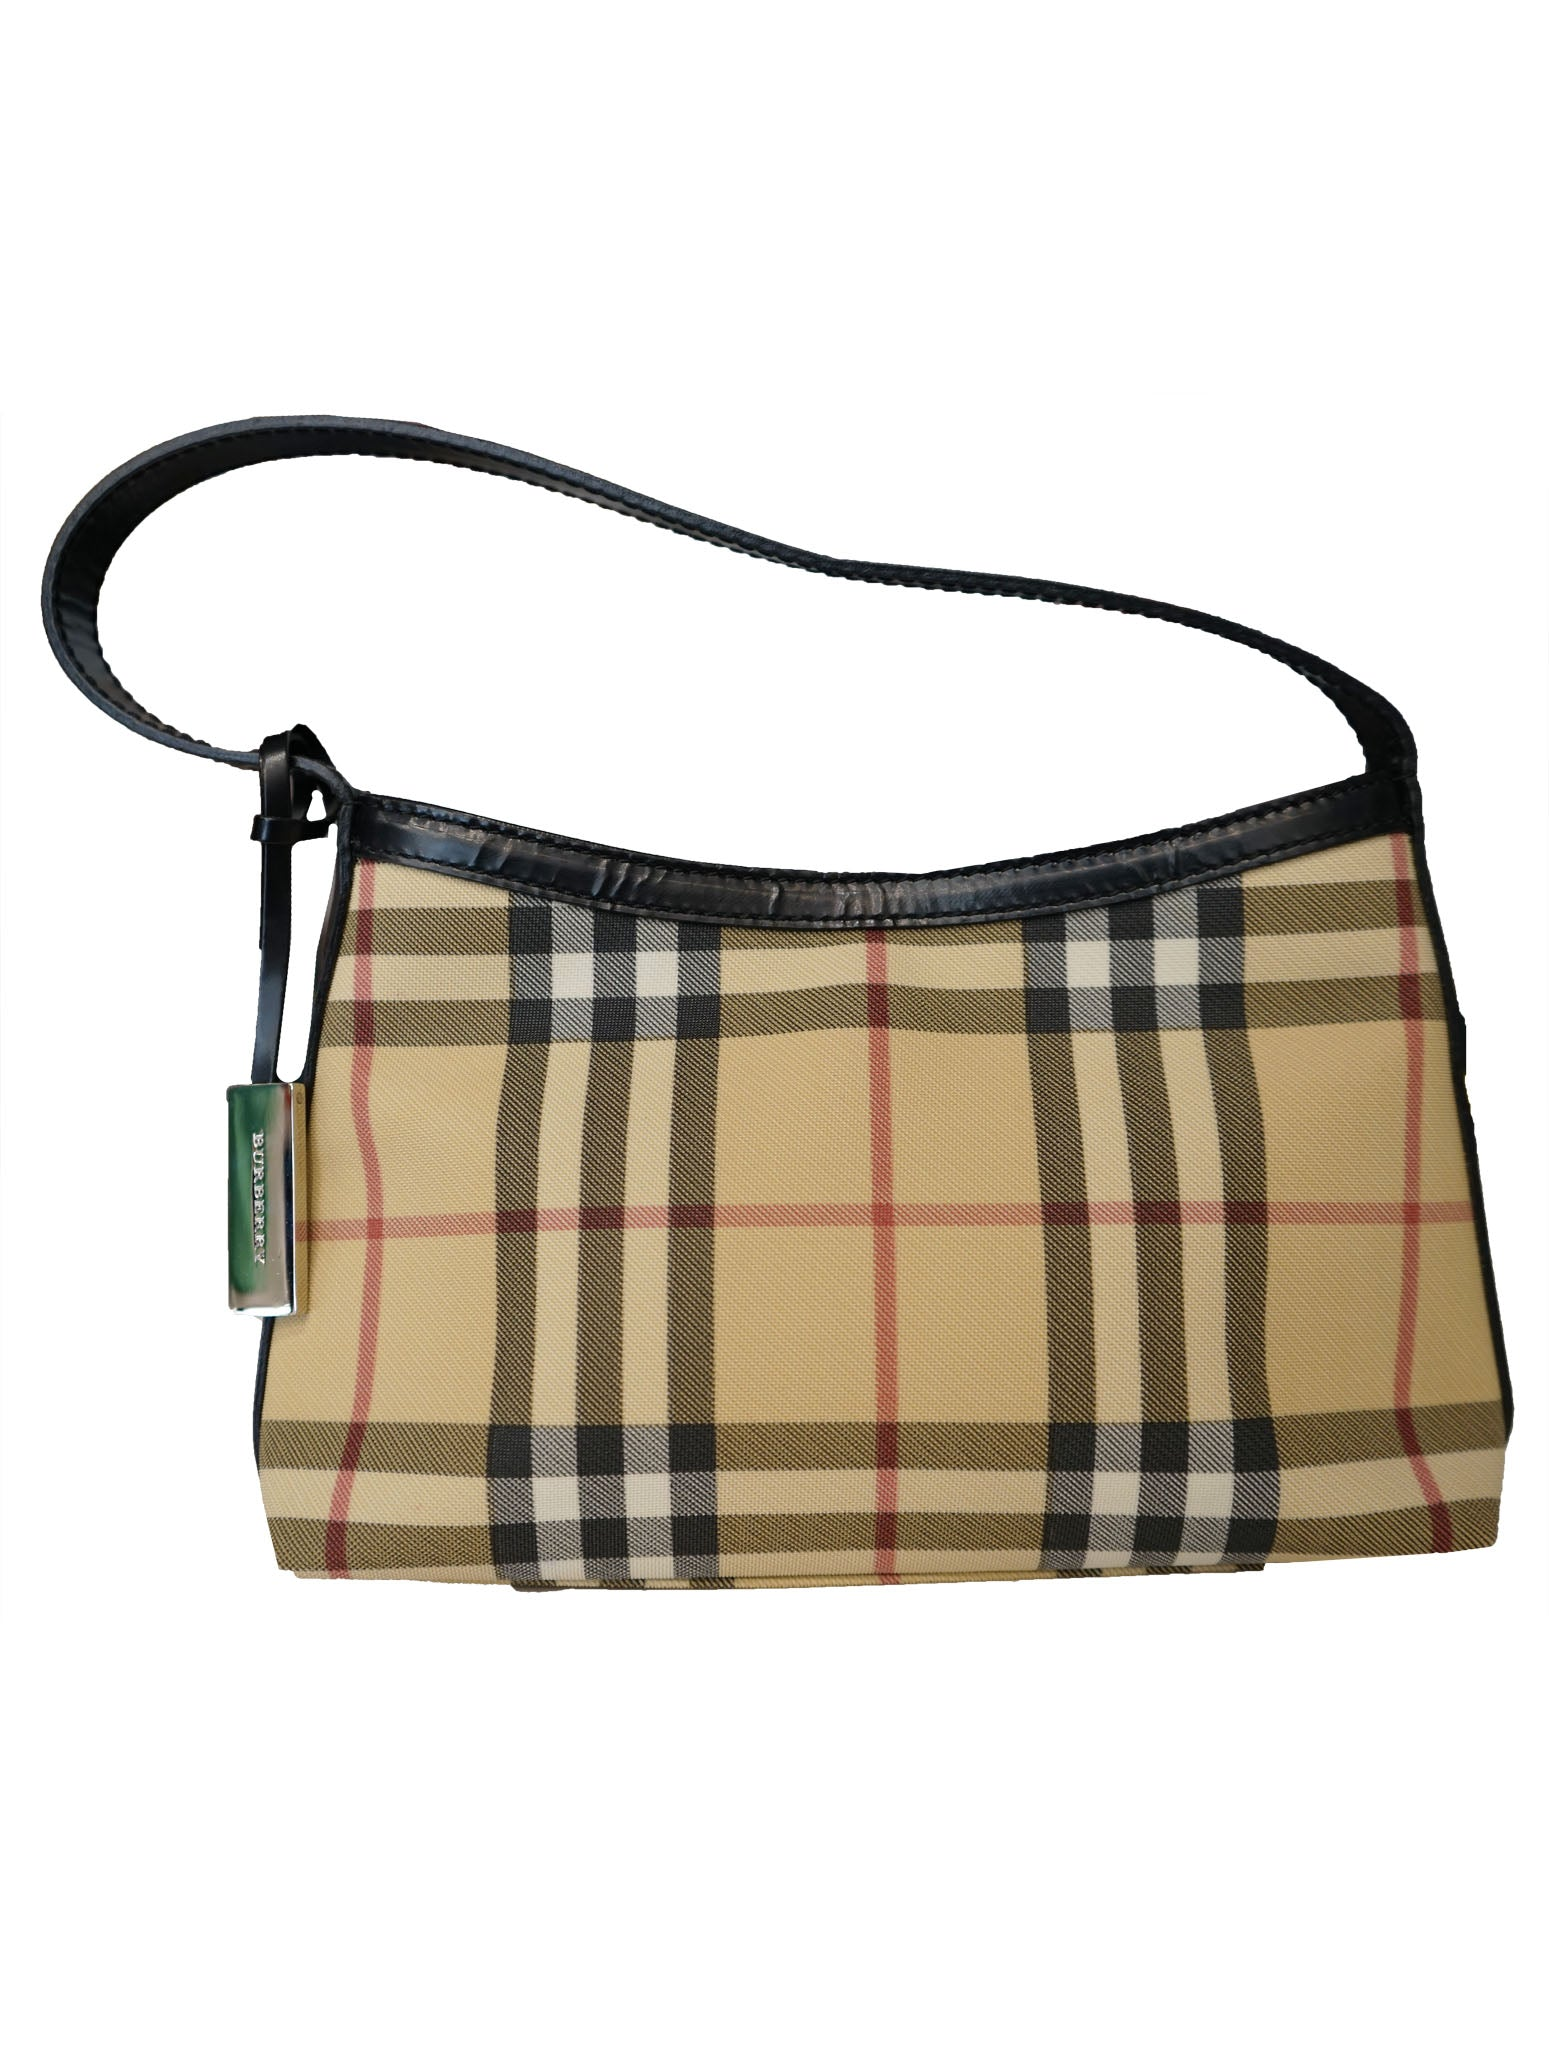 550e62b48e74 PRE-LOVED LADIES DESIGNERS BAG BURBERRY NOVA CHECK SMALL SHOULDER ...